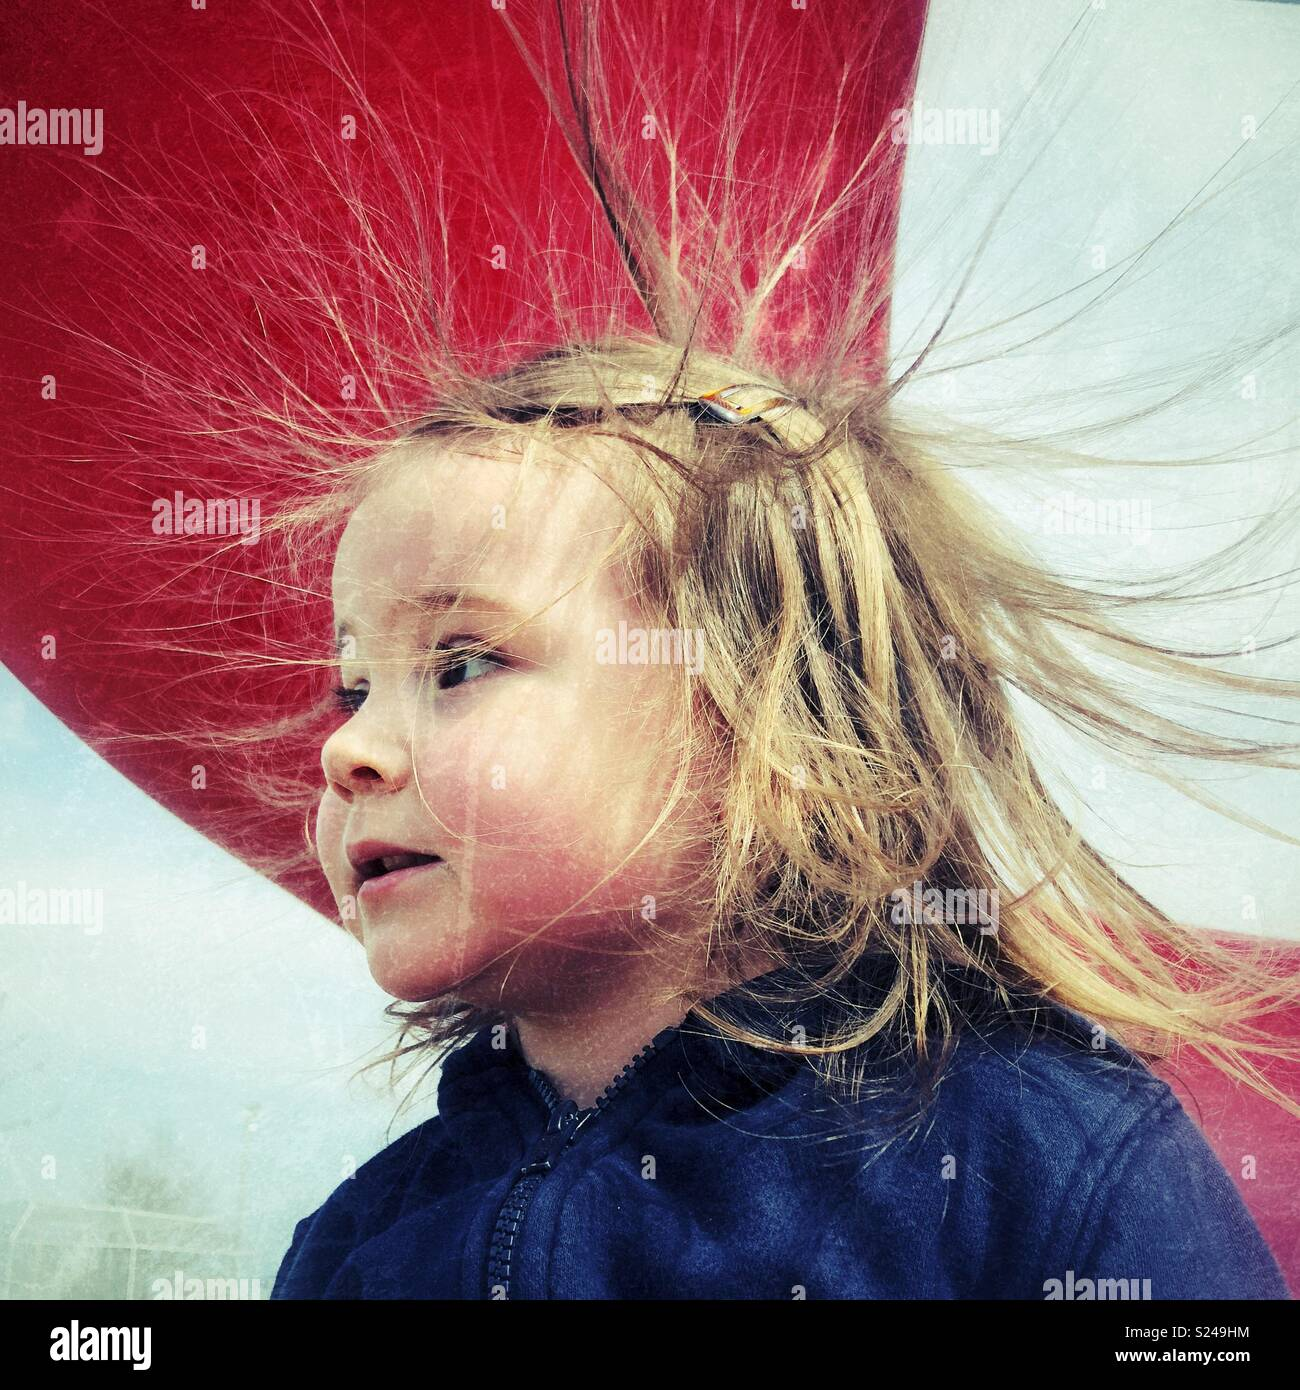 9d77c2c4e1 Young toddler girl portrait with static electricity from playground slide  causing hair sticking stick straight up